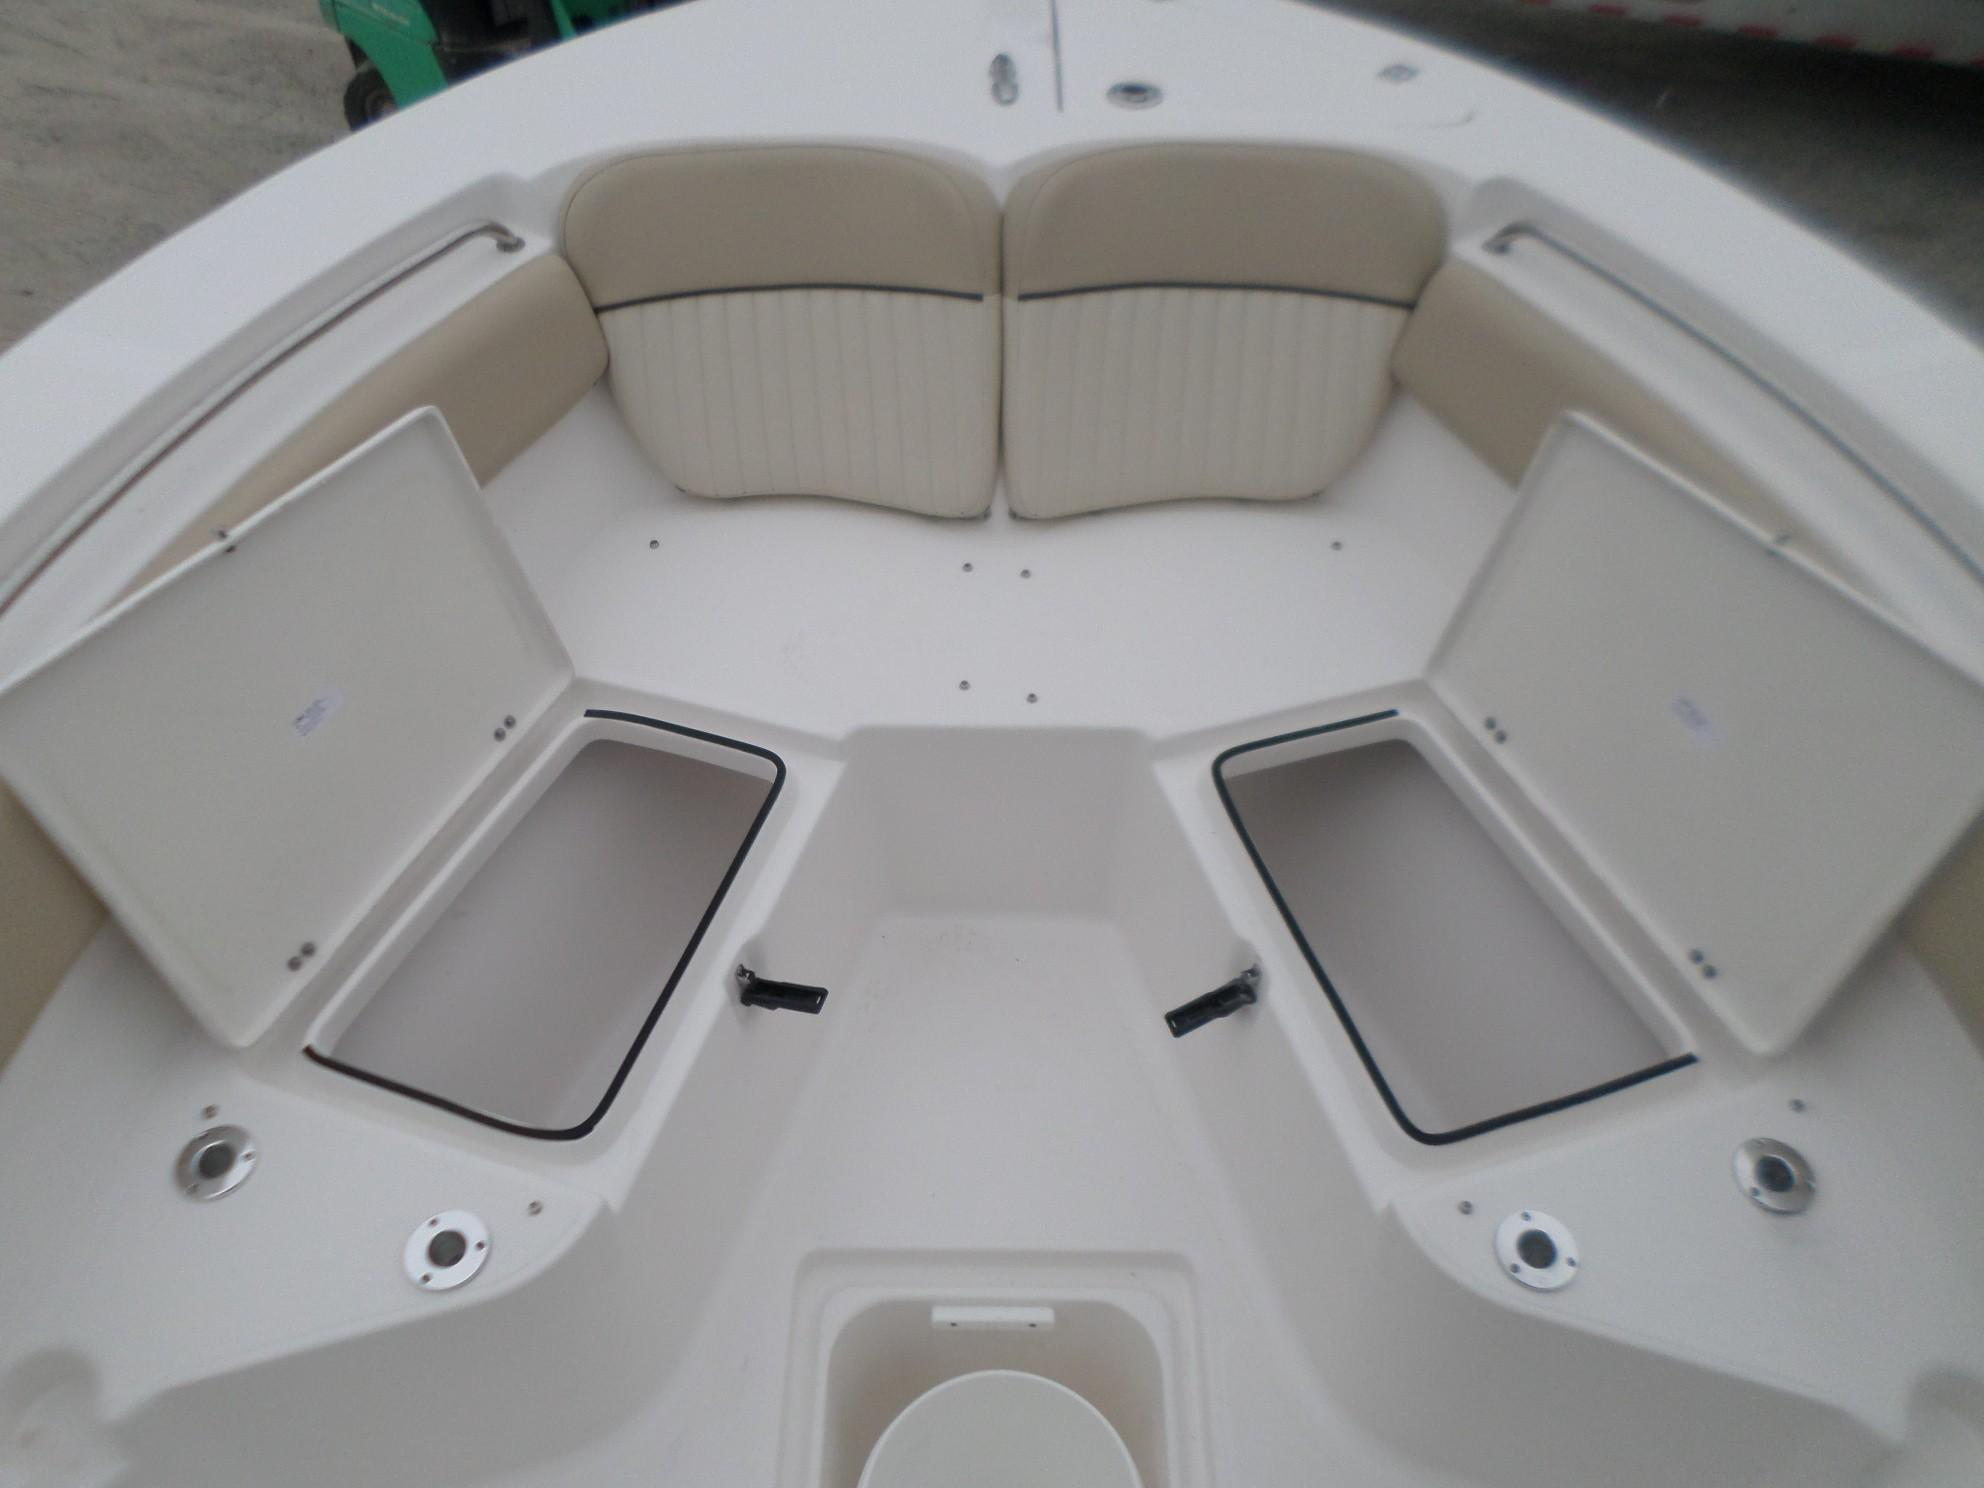 New  2019 22.33' Sea Fox 226 Commander Center Console in Slidell, Louisiana